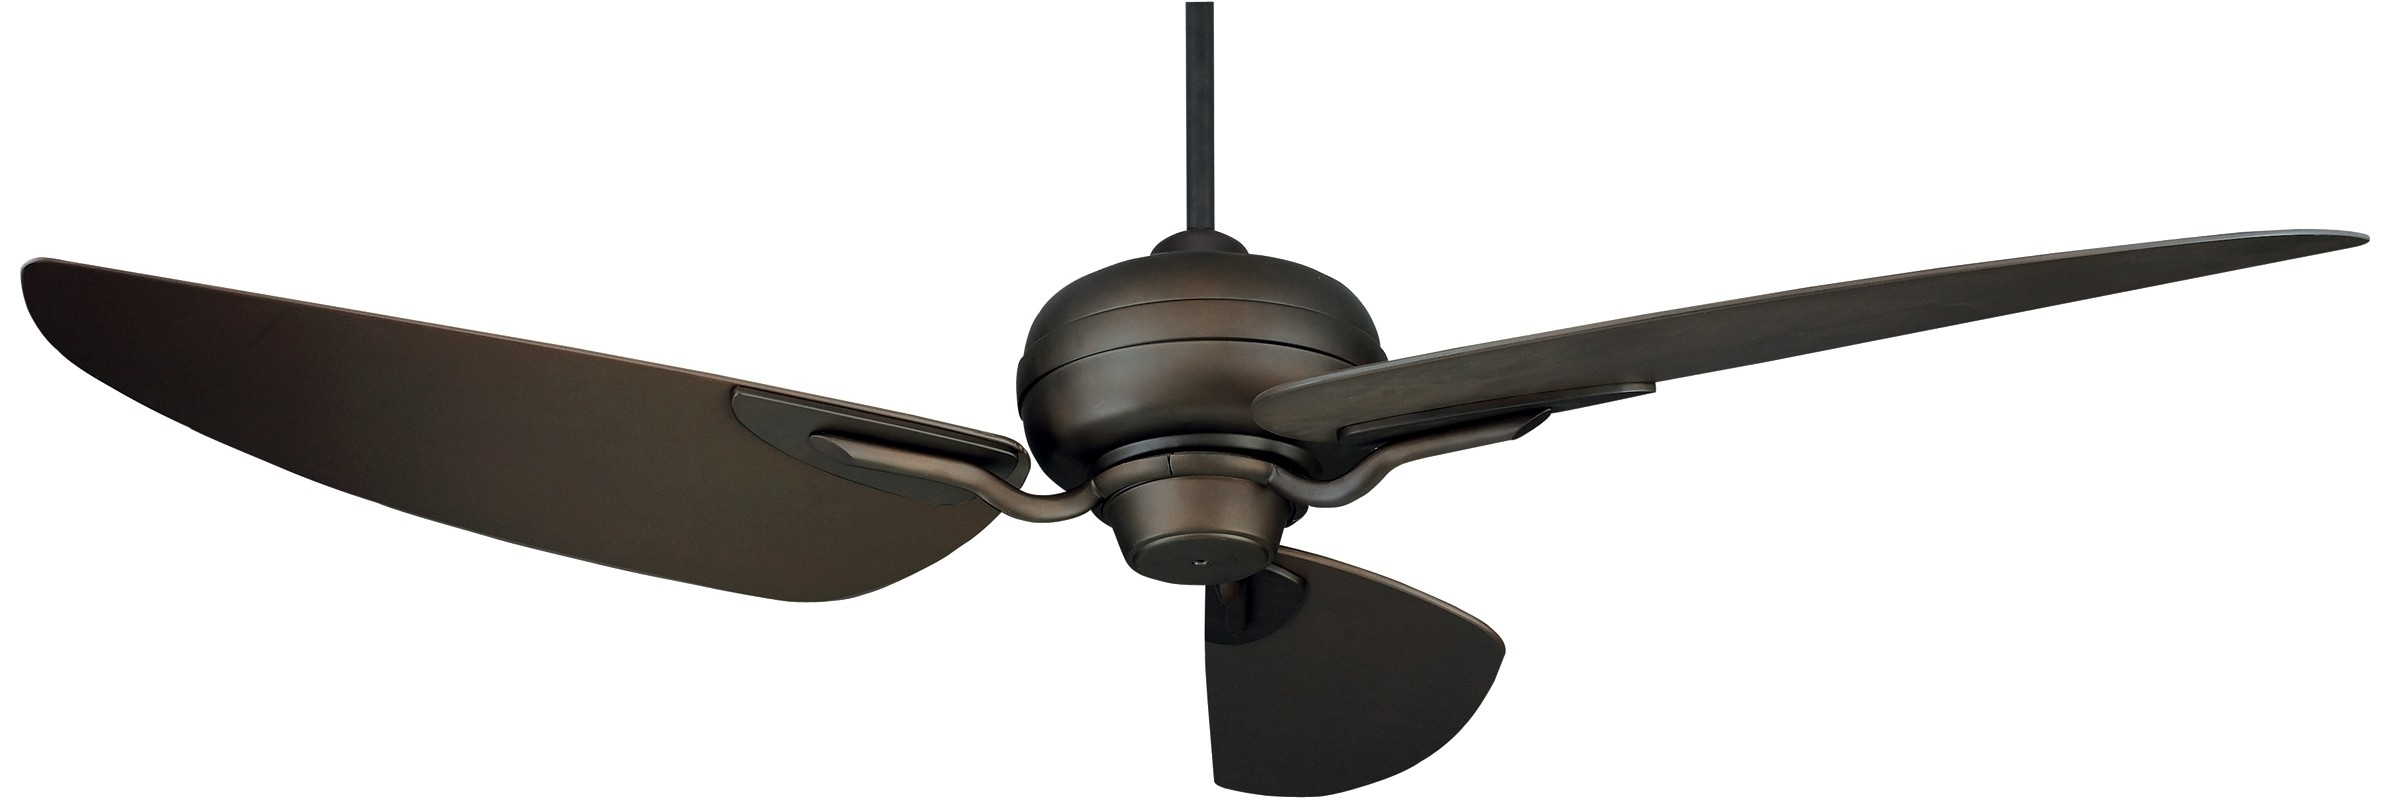 22 Exterior Ceiling Fans, Industrial Style Ceiling Fanrustic Regarding Trendy Bronze Outdoor Ceiling Fans (View 16 of 20)